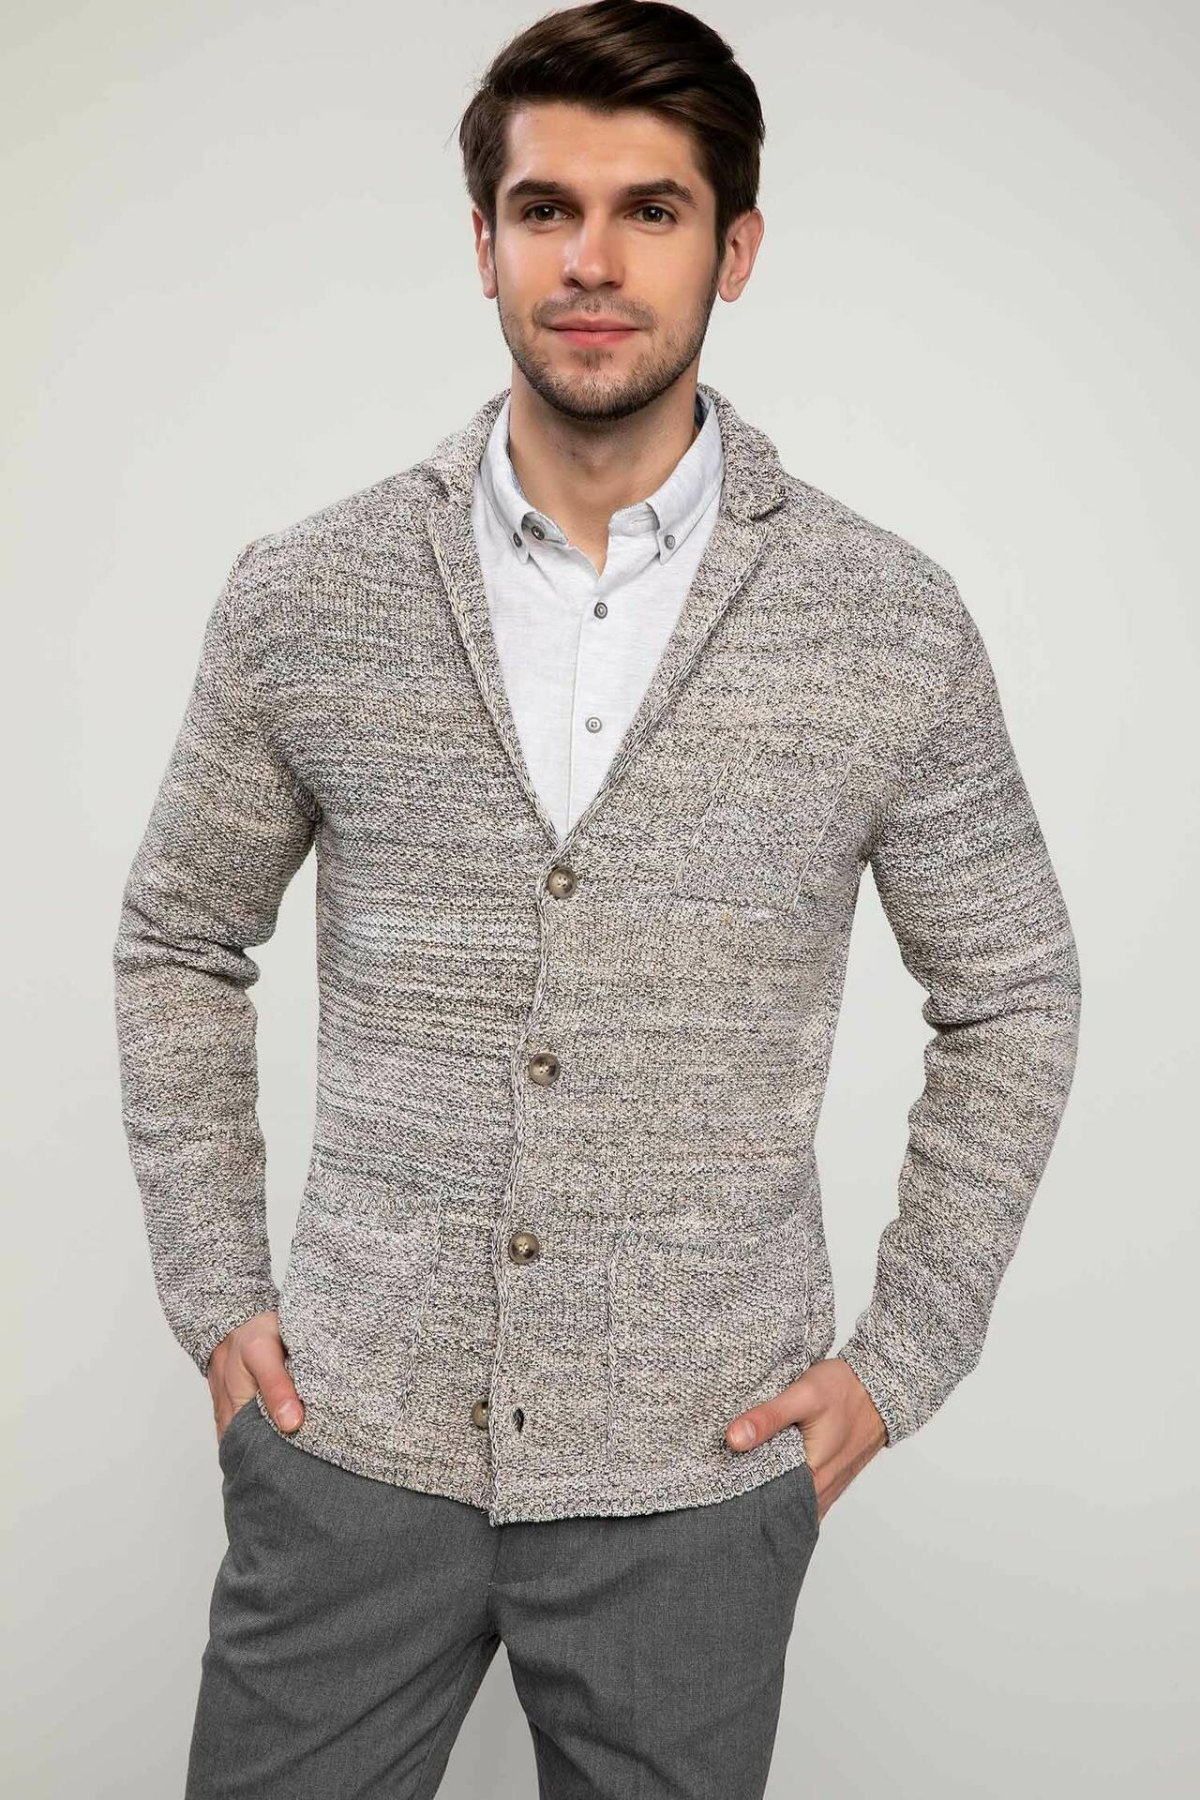 DeFacto Man Lapel Knitted Cardigan Male Single-breasted Warm Coats For Men's Slim Casual Jackets - J2853AZ18AU